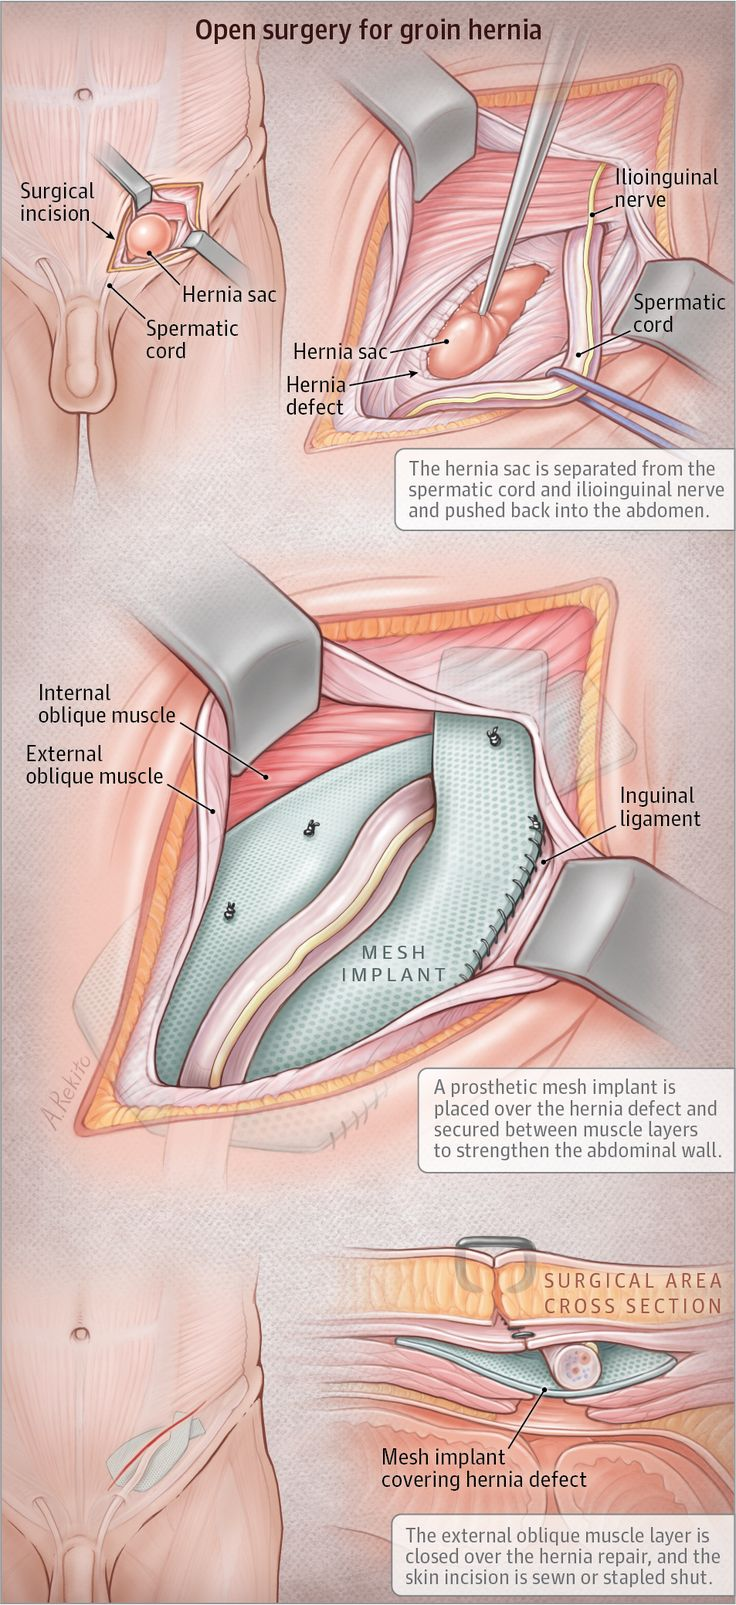 Groin Hernia Repair by Open Surgery JAMA. 2017;318(8):764. doi:10.1001/jama.2017.9868